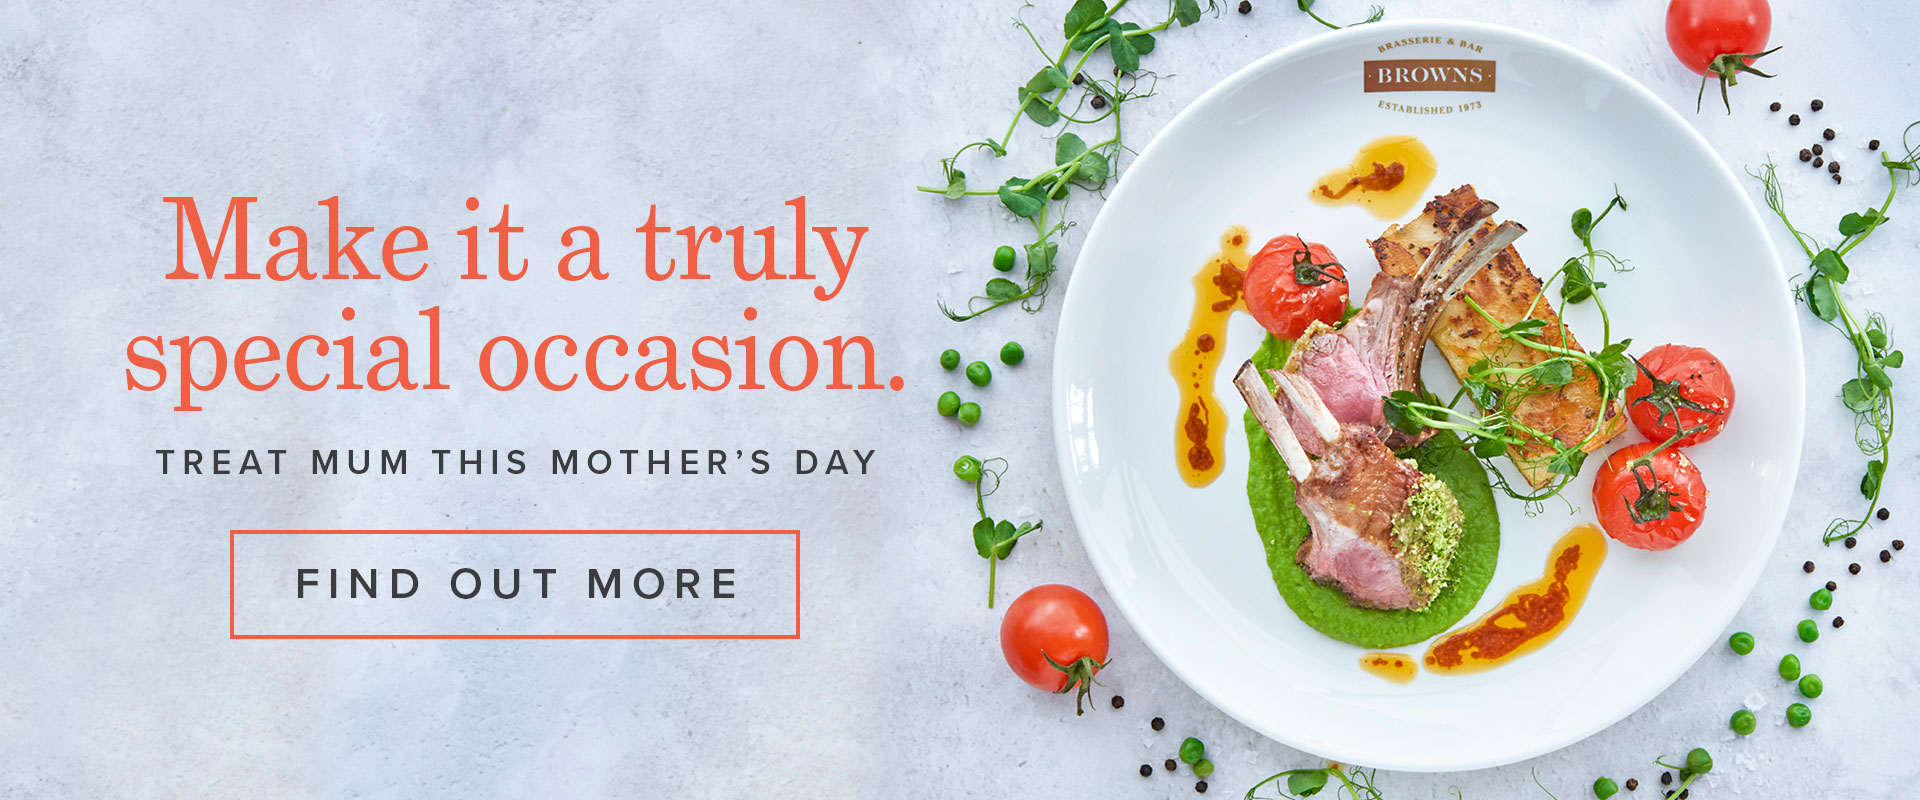 Mother's Day 2019 at Browns Edinburgh